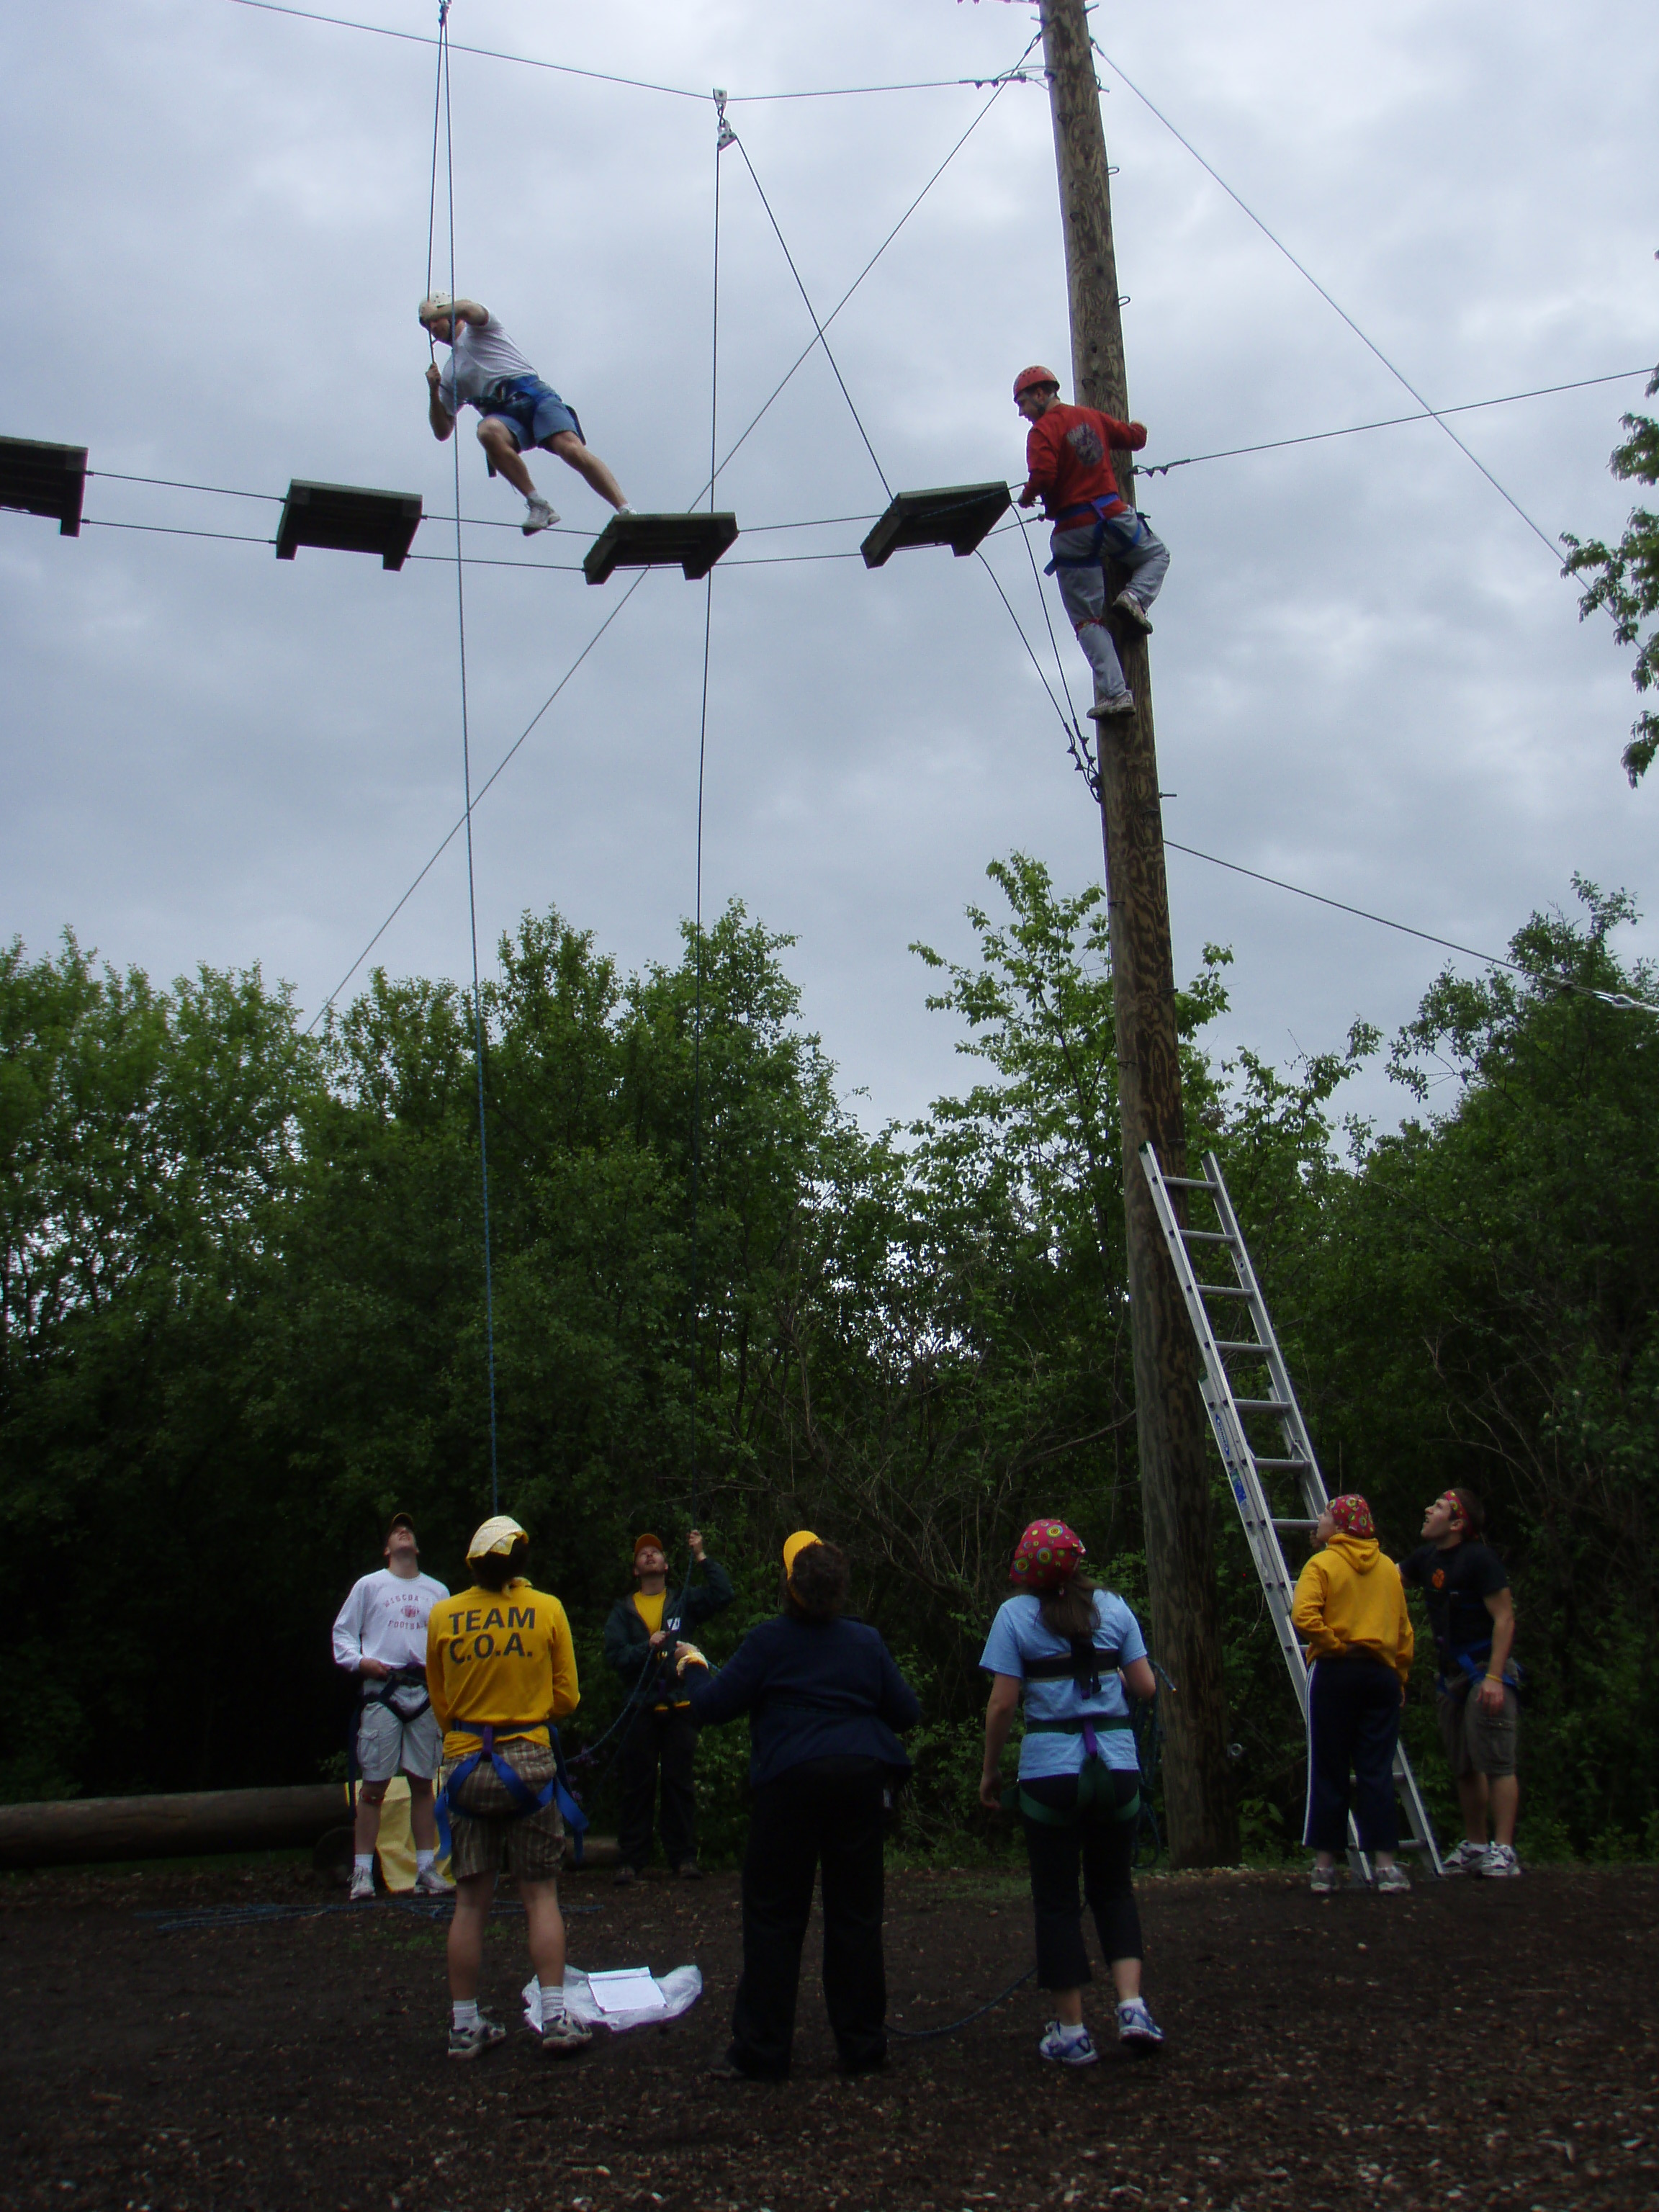 Teambuilding Ropes Course Near Waukesha Milwaukee